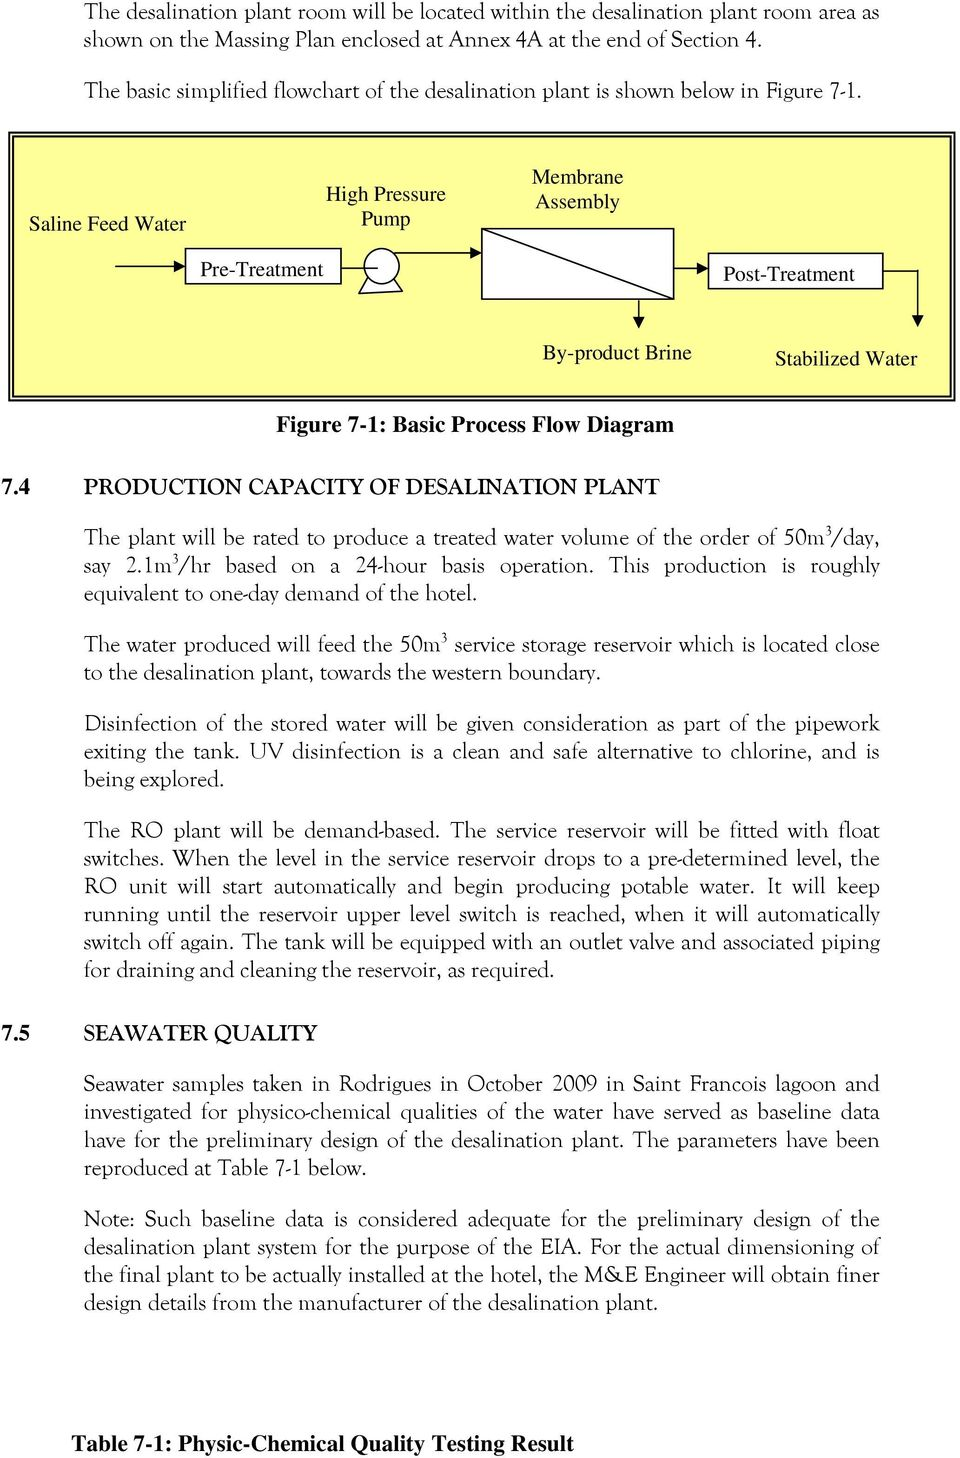 7 Technical Aspects Of Desalination Plant Pdf Process Flow Diagram Reverse Osmosis Saline Feed Water High Pressure Pump Membrane Assembly Pre Treatment Post By